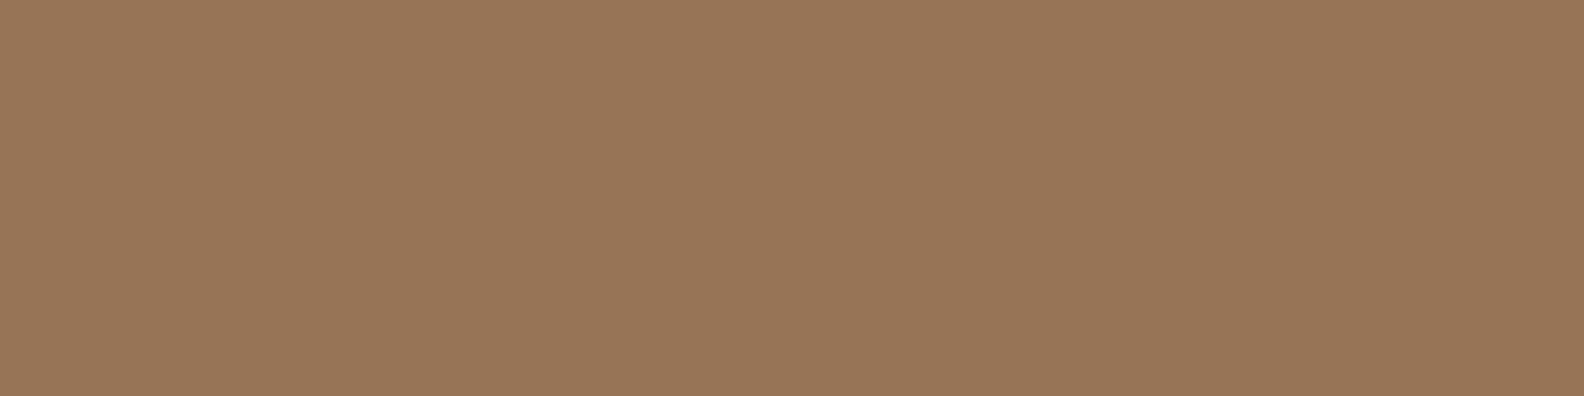 1584x396 Liver Chestnut Solid Color Background